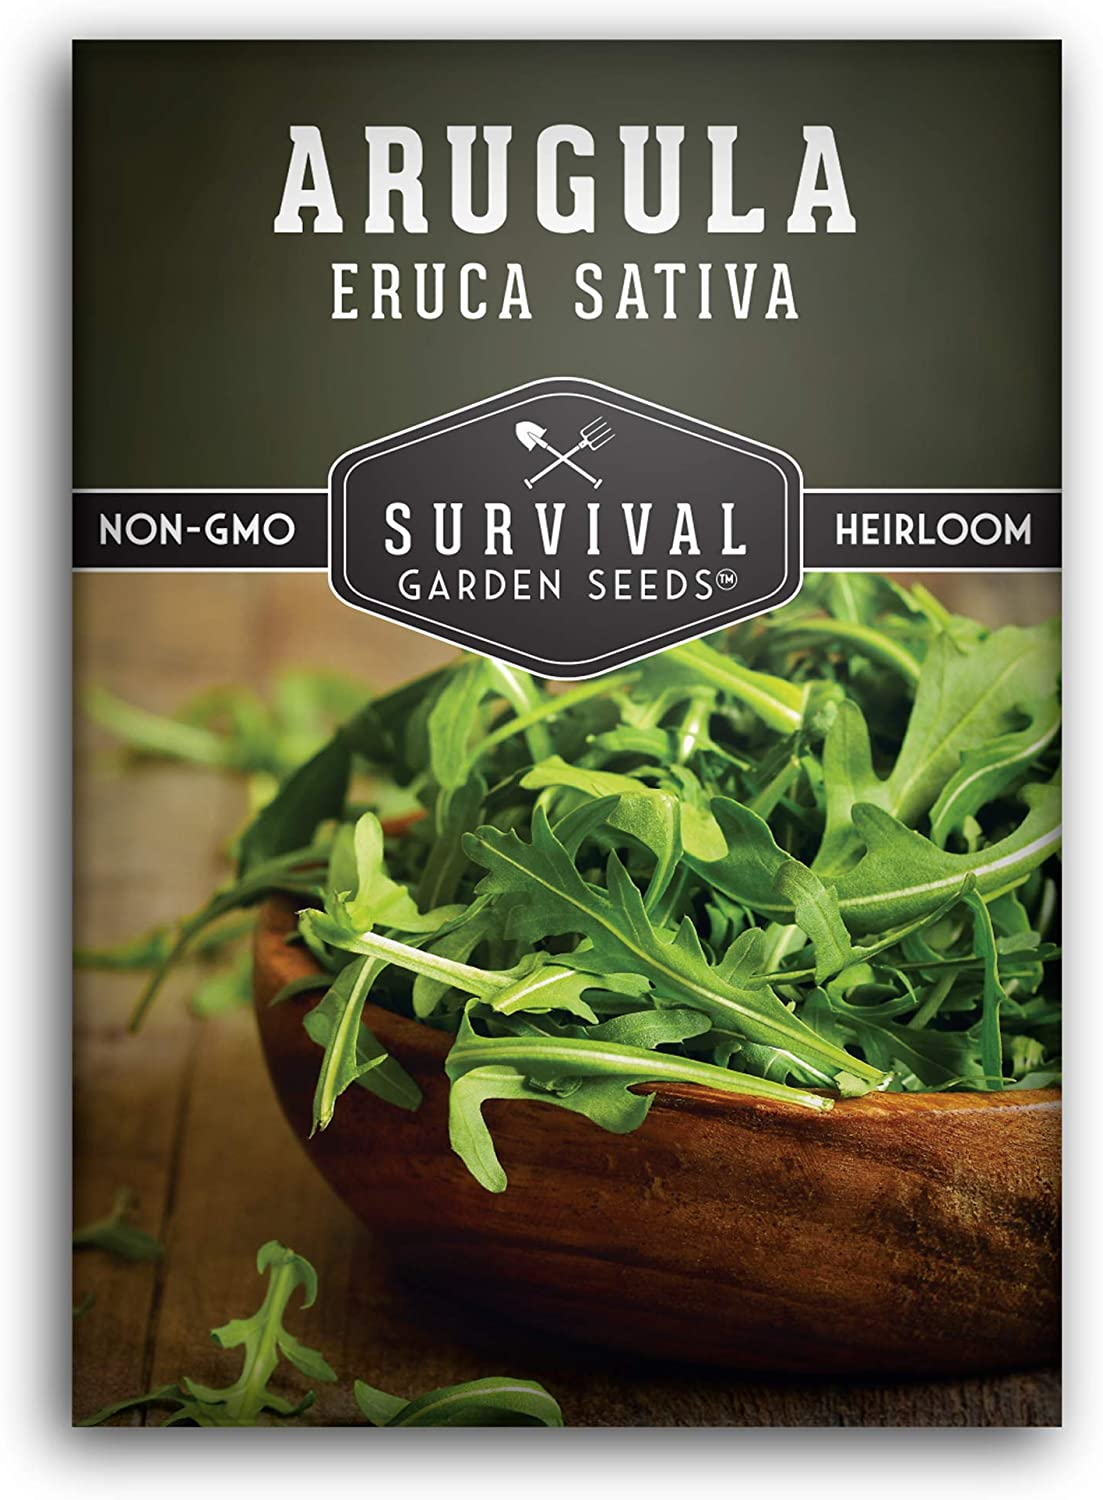 Survival Garden Seeds - Arugula Seed for Planting - Packet with Instructions to Plant and Grow in Your Home Vegetable Garden - Non-GMO Heirloom Variety